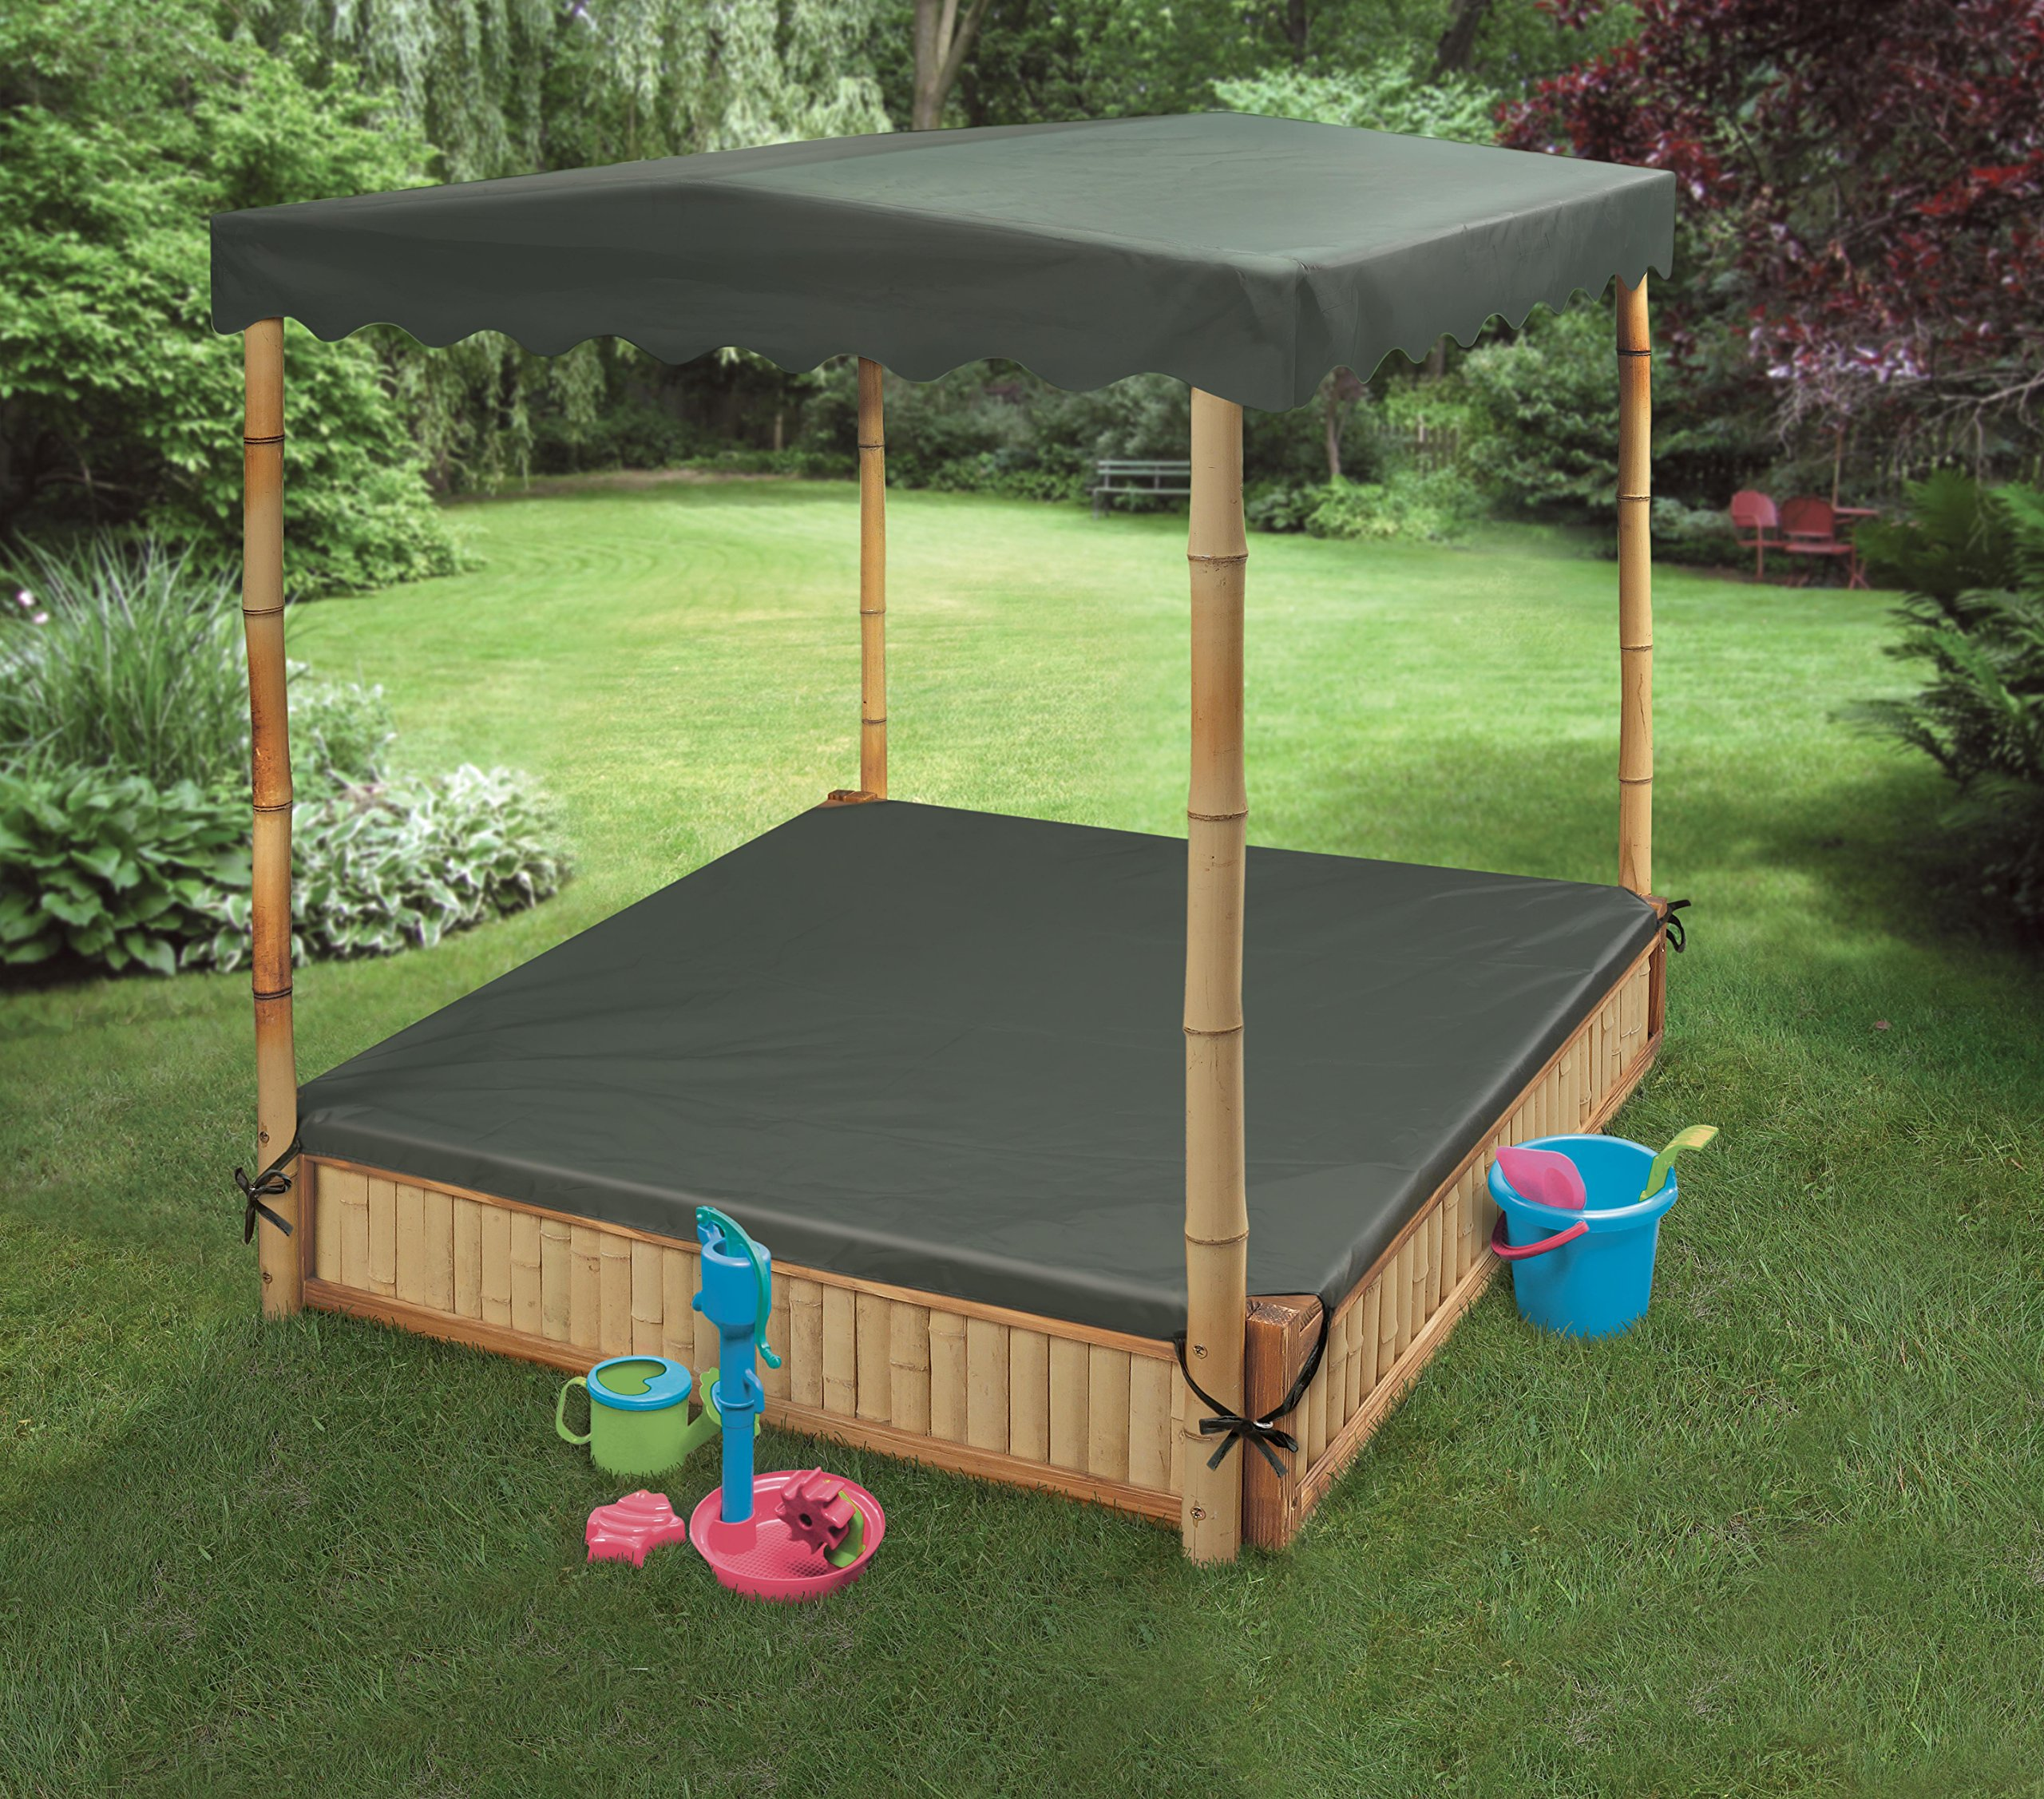 Badger Basket Tropical Fun Square Bamboo/Wood Outdoor Sandbox with Fabric Canopy/Cover and Seats, Natural/Green by Badger Basket (Image #3)